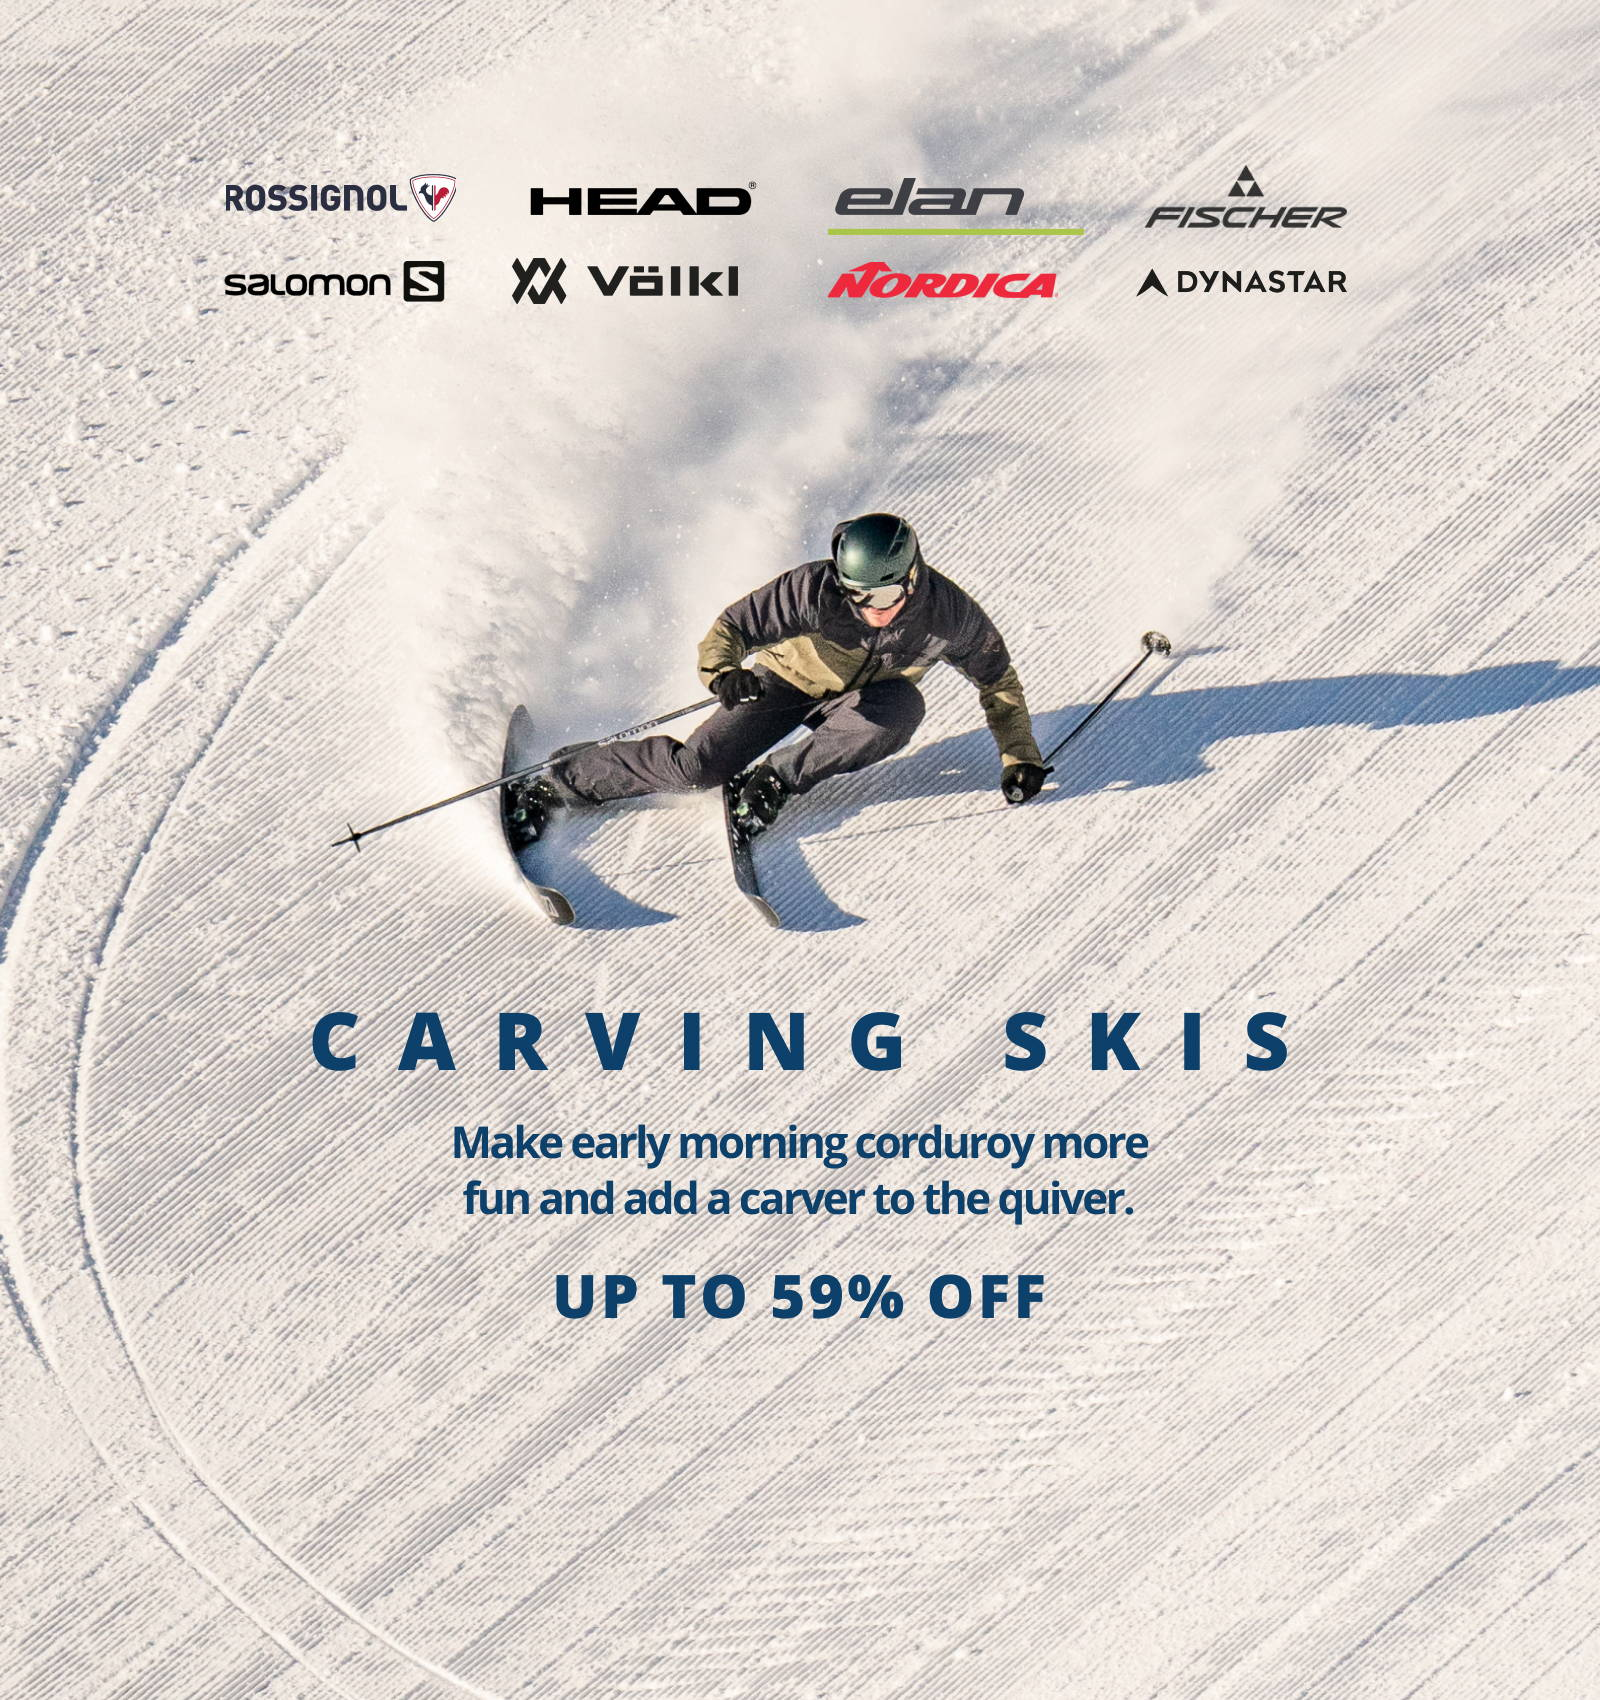 Carving Skis